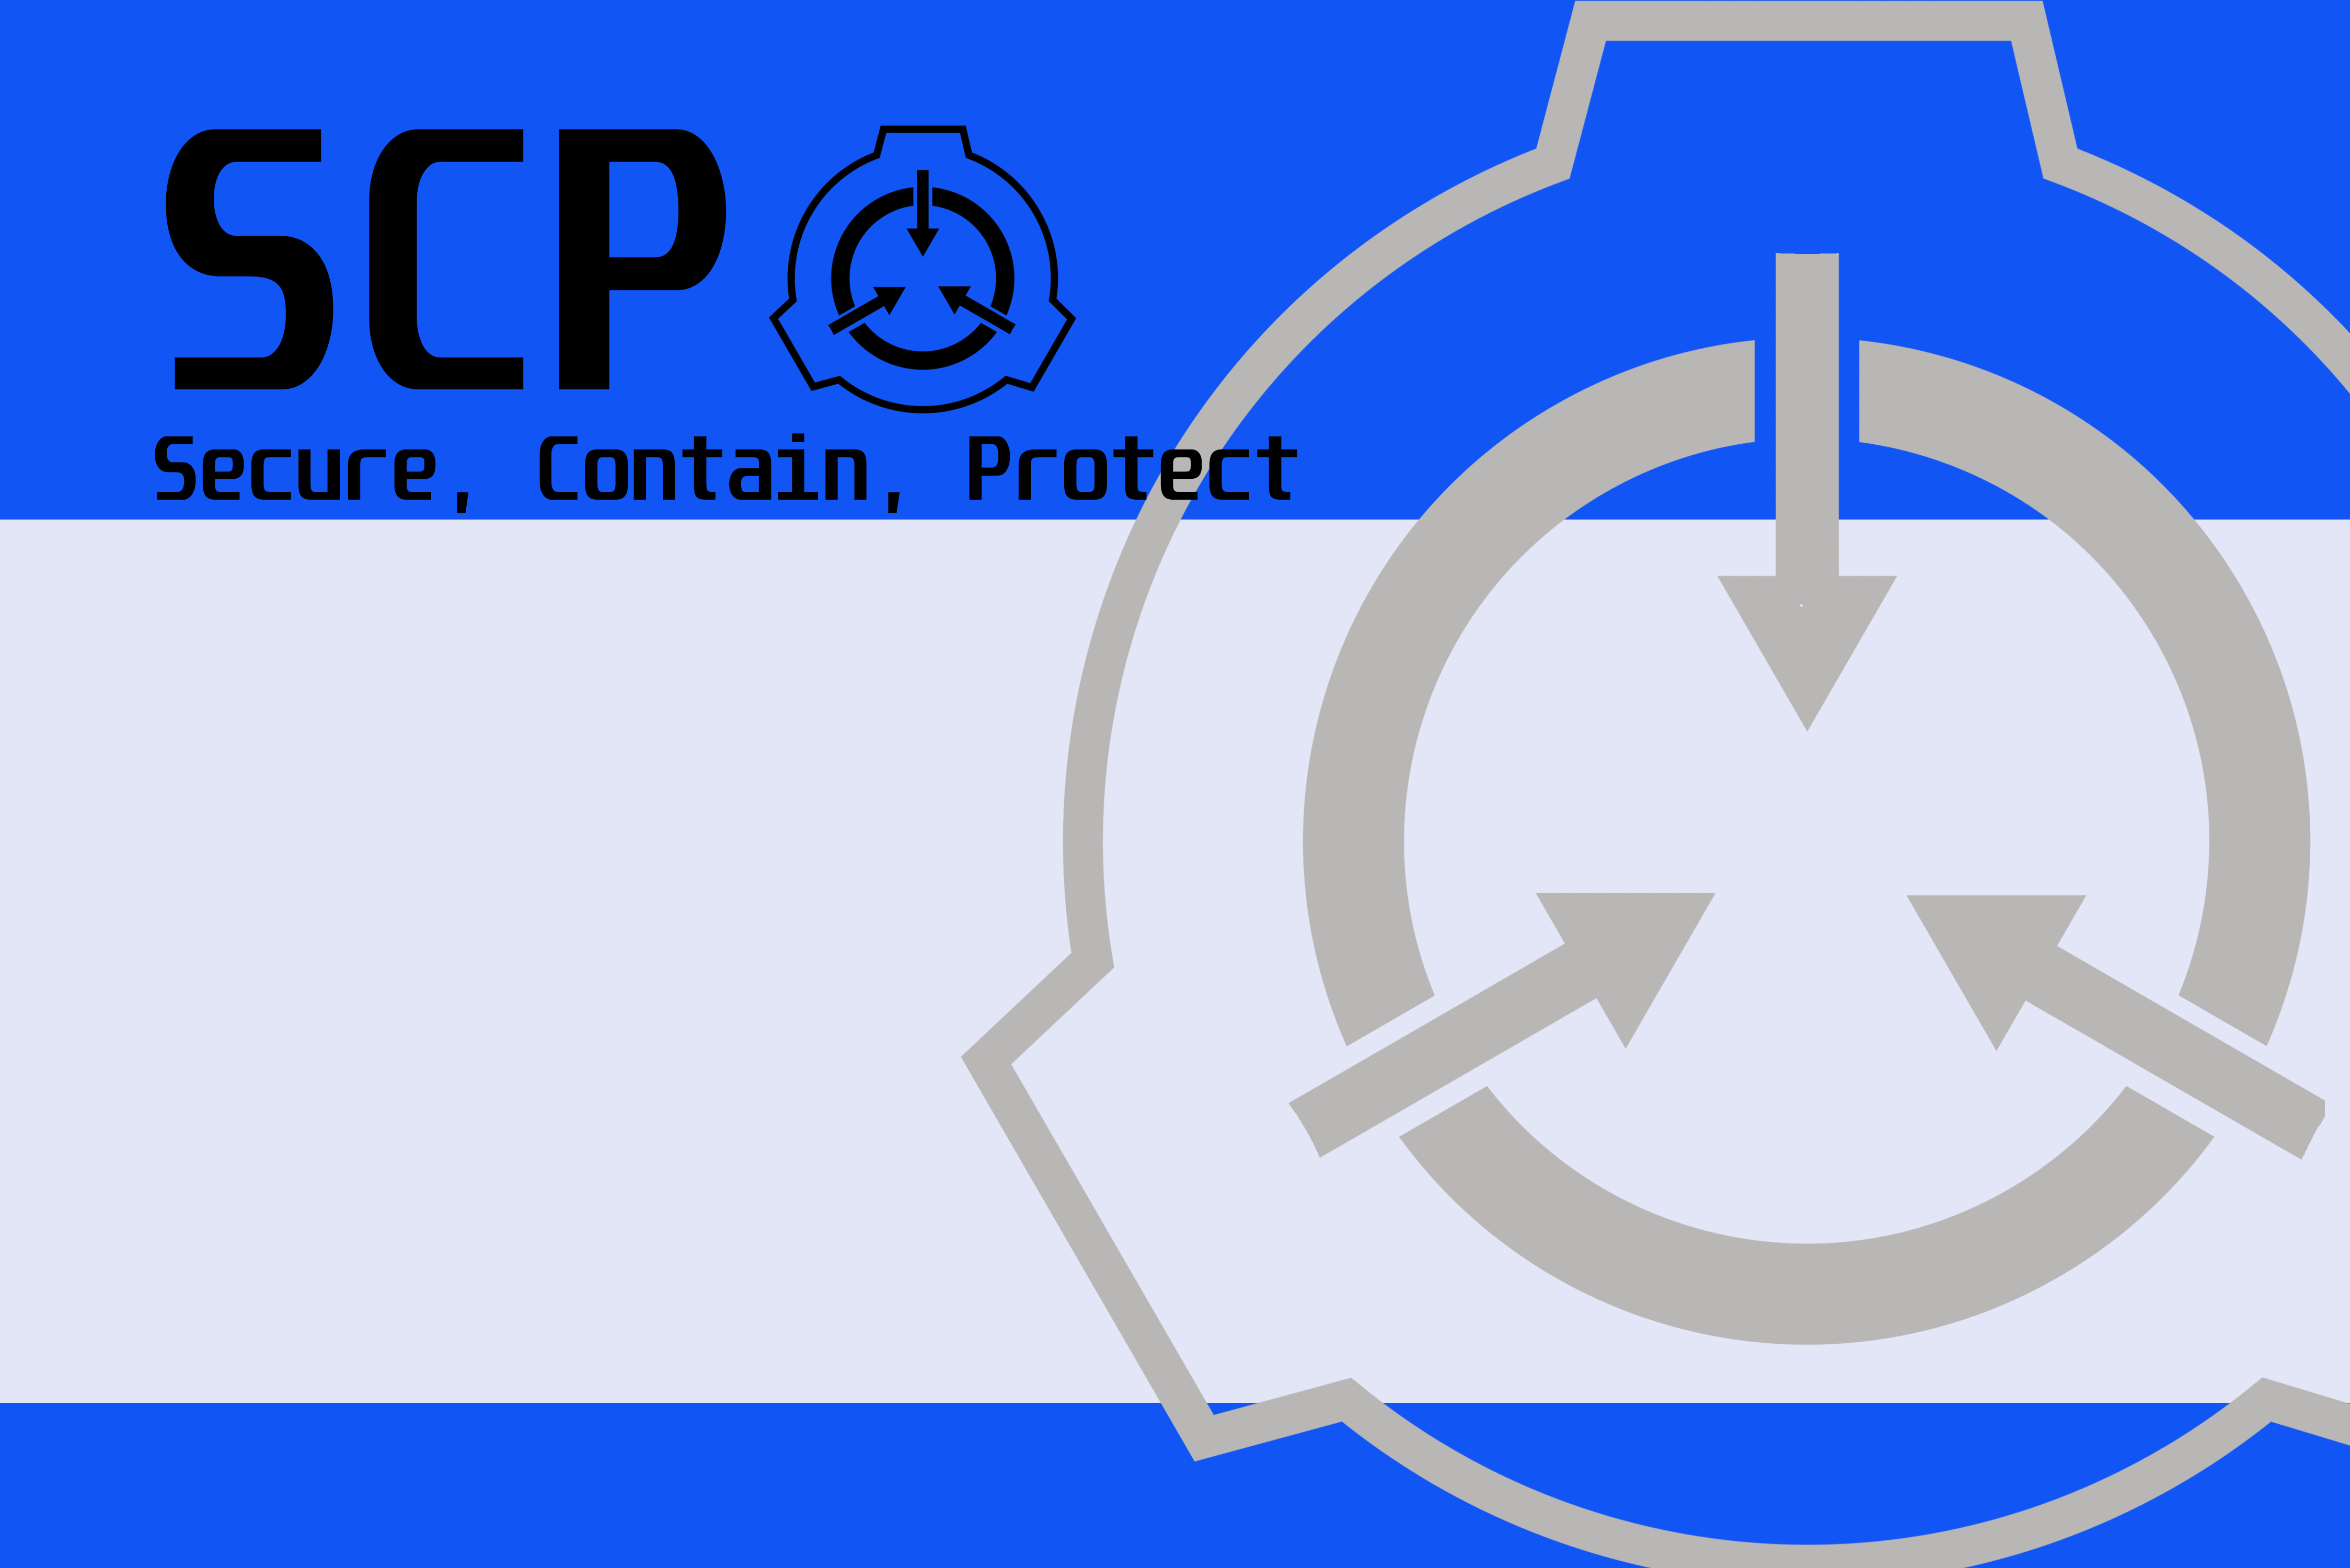 SCP-Ccard-Blue-01.png